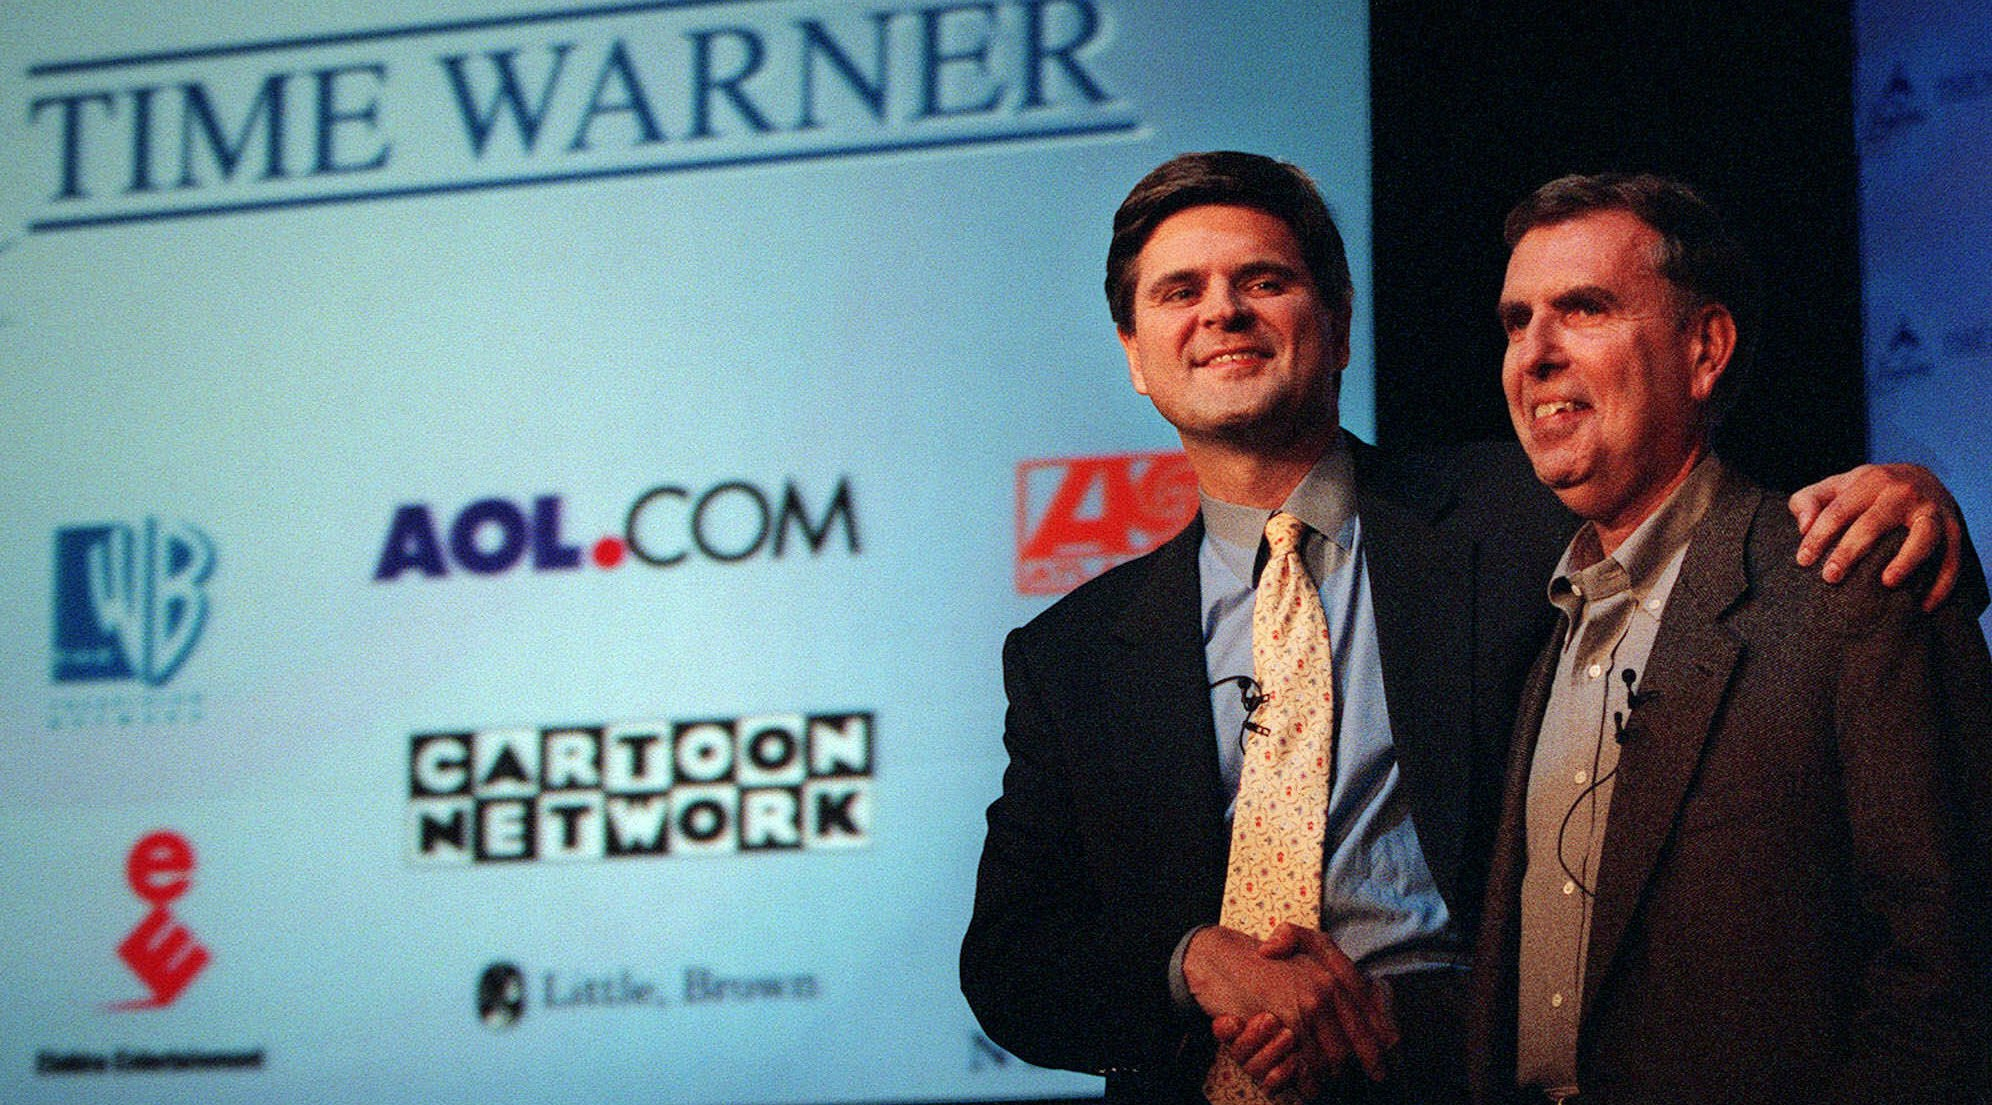 America Online's chairman and chief executive, Steve Case, left, and Time Warner's chairman and chief executive, Gerald Levin, shake hands before a news conference Monday, Jan. 10, 2000, in New York. Time Warner, the world's largest media and entertainment company, is being acquired by America Online for about $166 billion in stock in what would be the biggest corporate merger ever.